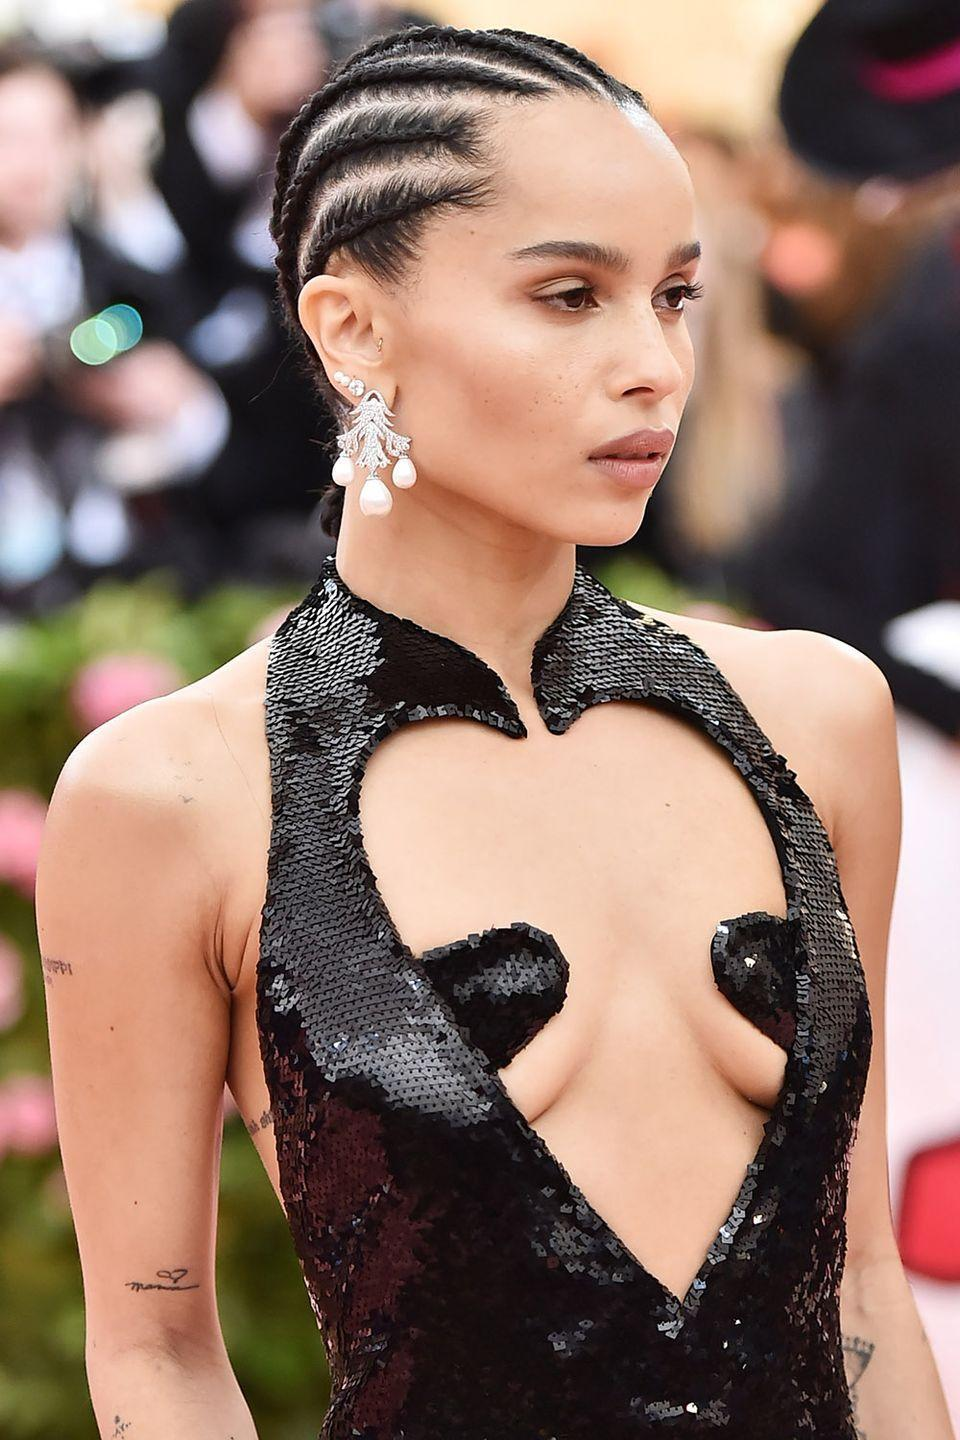 <p>You can totally do cornrows on short hair, as seen here on Zoe Kravitz. Taylor recommends having about two inches of hair length in order to style your hair into cornrows, otherwise she says the hair won't be long enough to braid. </p>